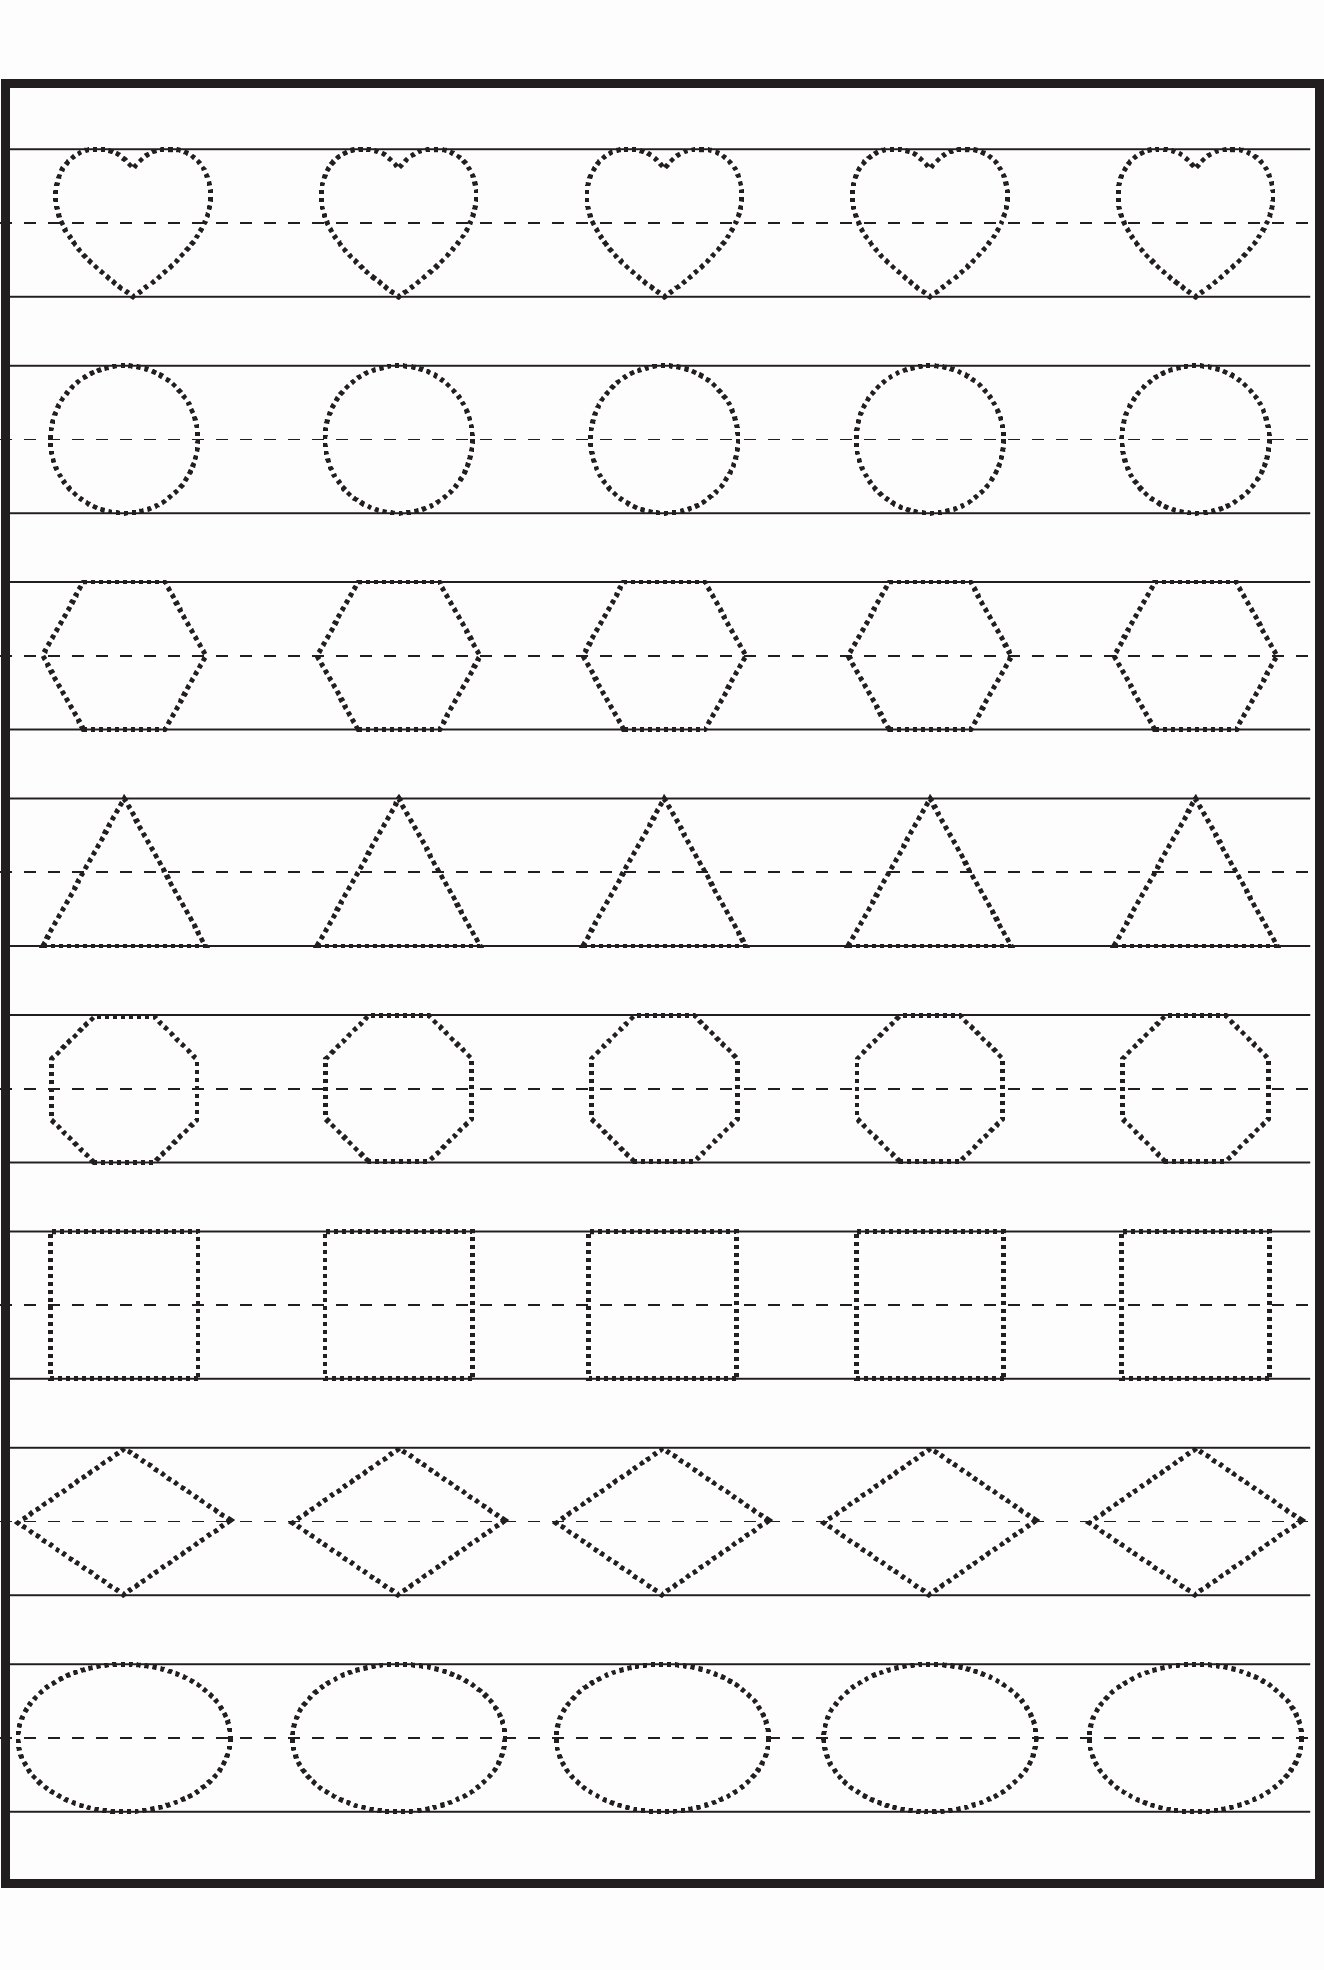 Traceable Shapes Worksheets for Preschoolers Unique Preschool Tracing Worksheets Best Coloring Pages for Kids